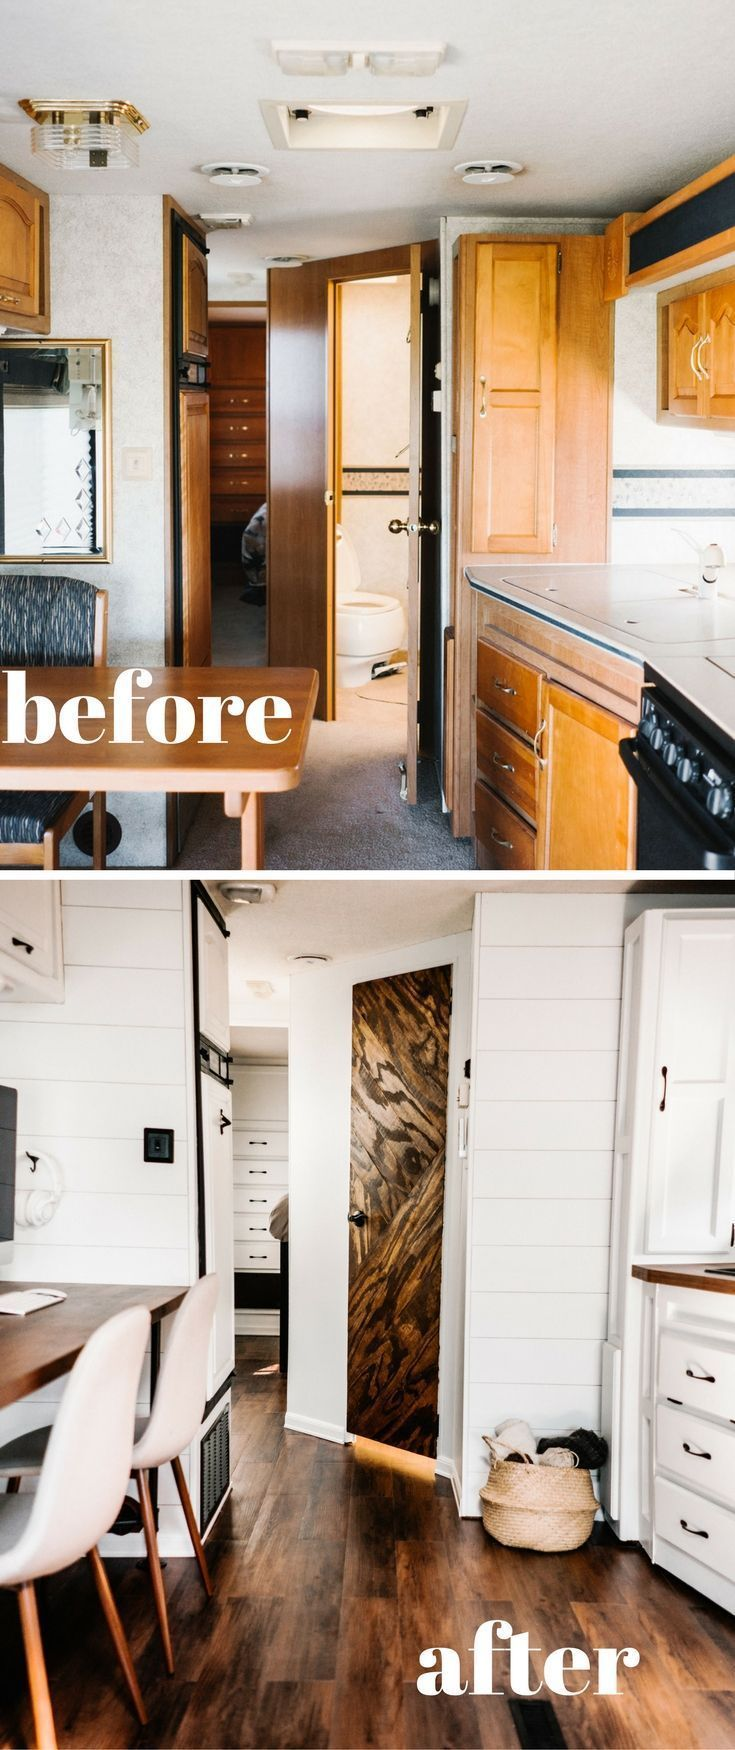 About to start a DIY RV remodel? Learn how other full time RVers did it with tips on budget rv renovations, before and after pictures, LIVE tours and !